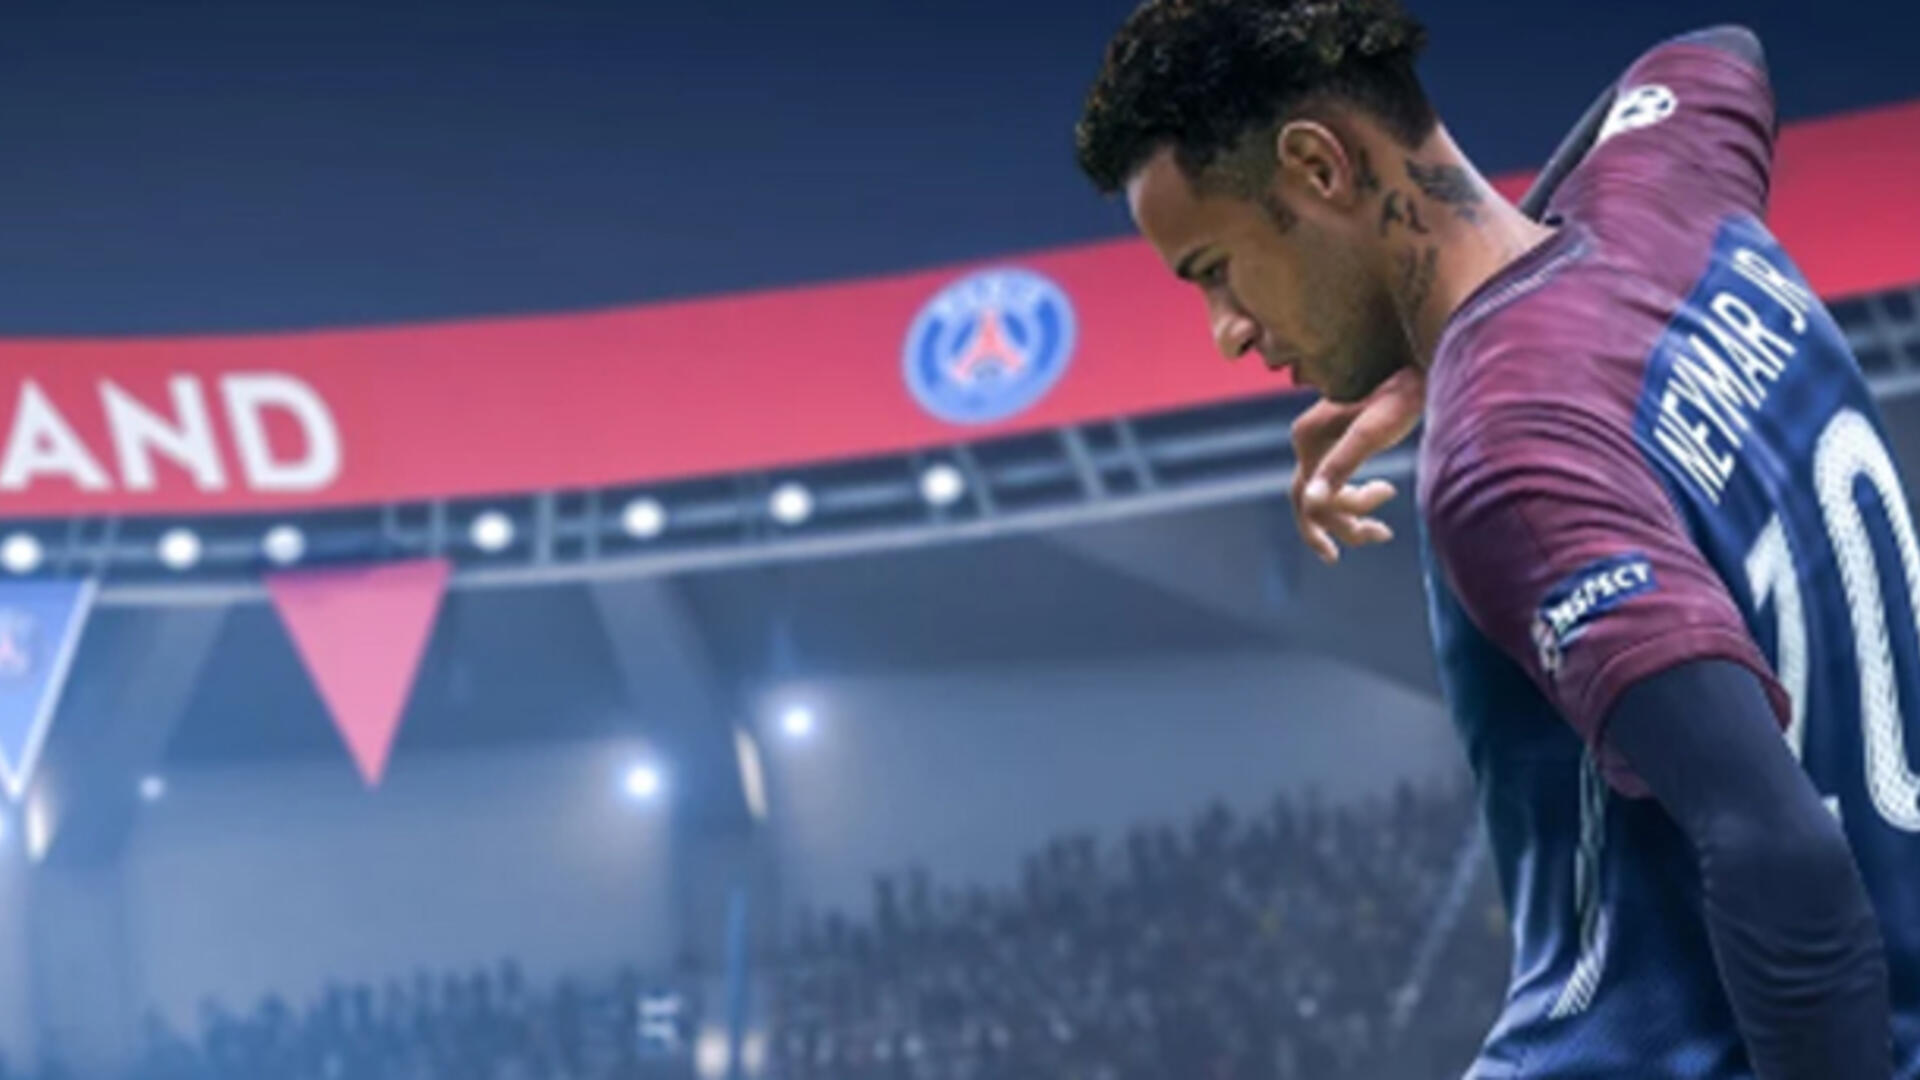 FIFA 19 PS4 Demo Release Seemingly Causes PSN Issues